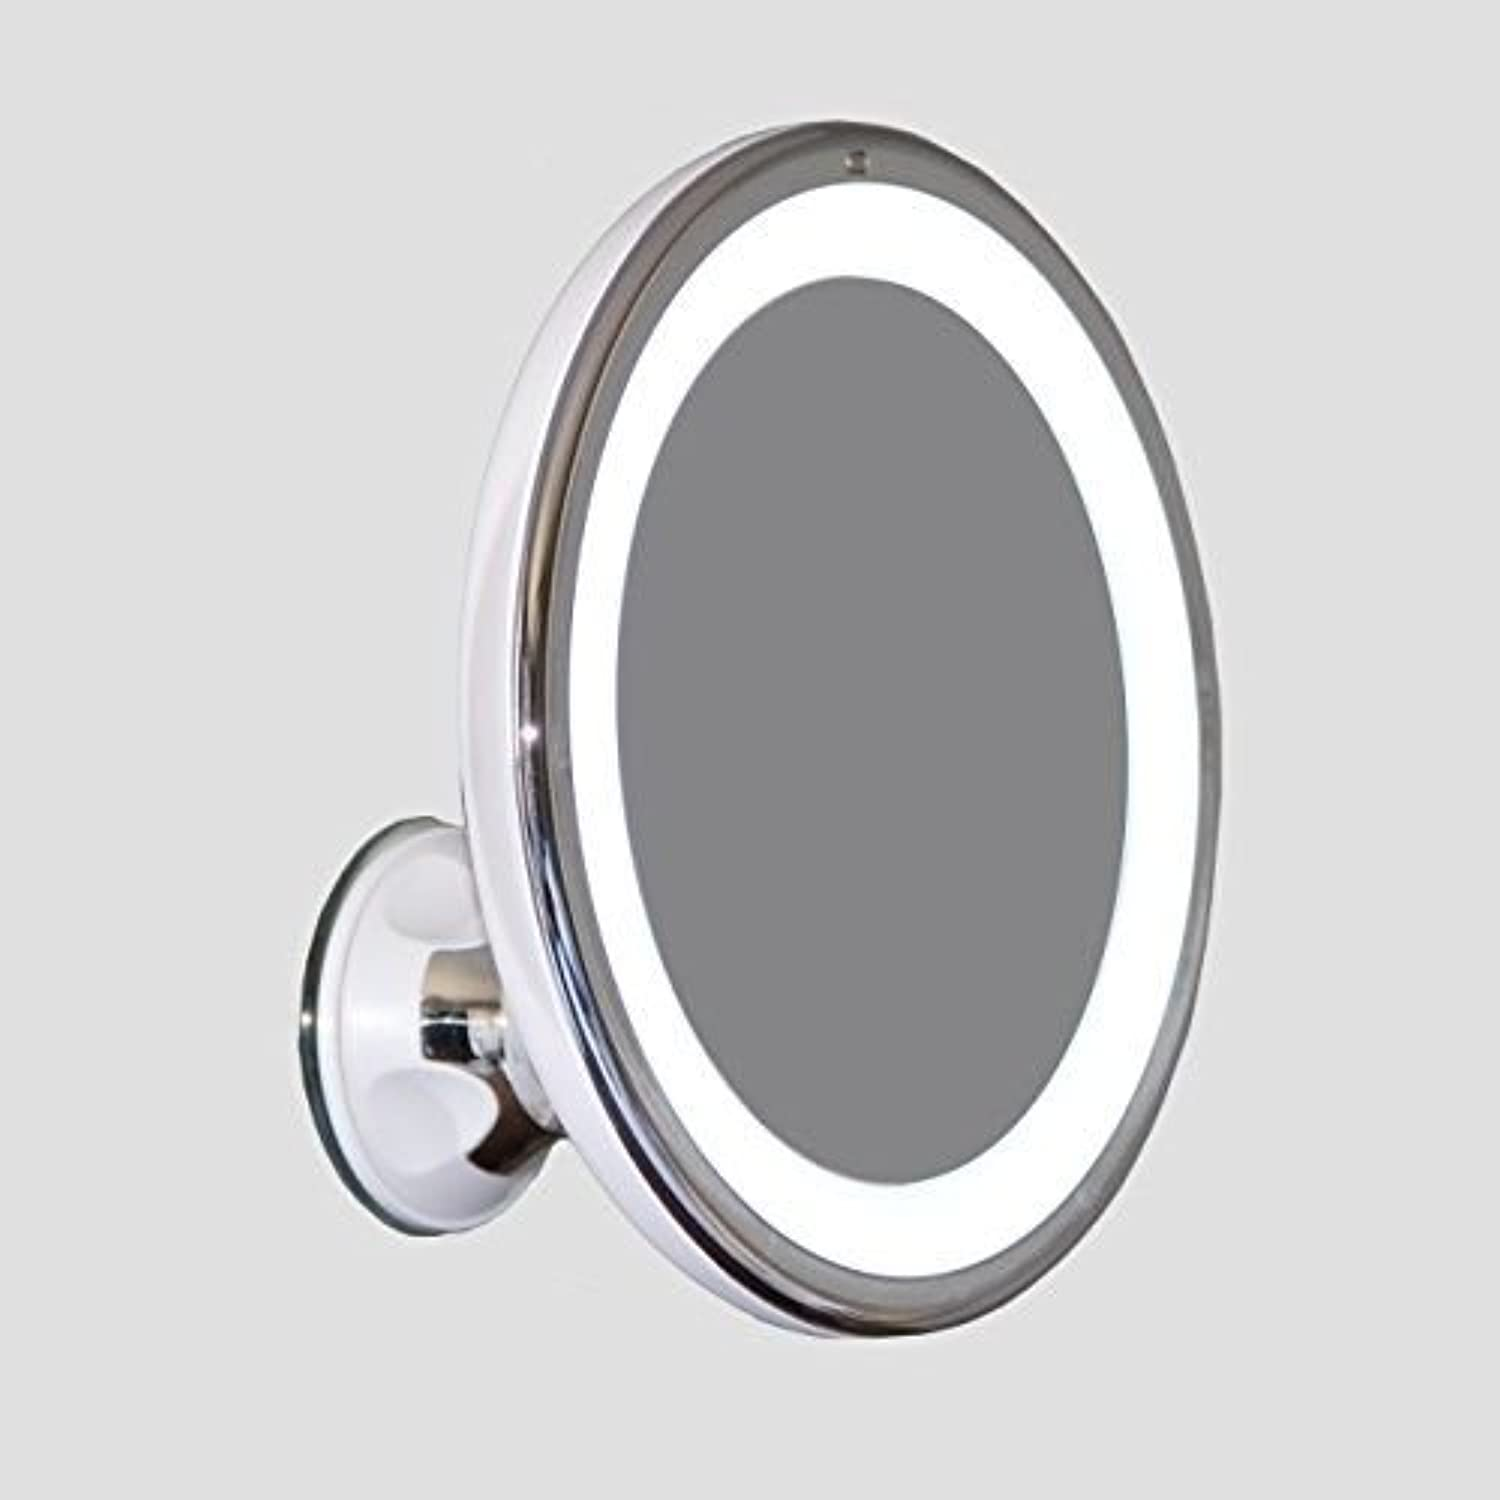 Makeup Mirror, LED - Adjustable 5X Magnification Lighted Vanity